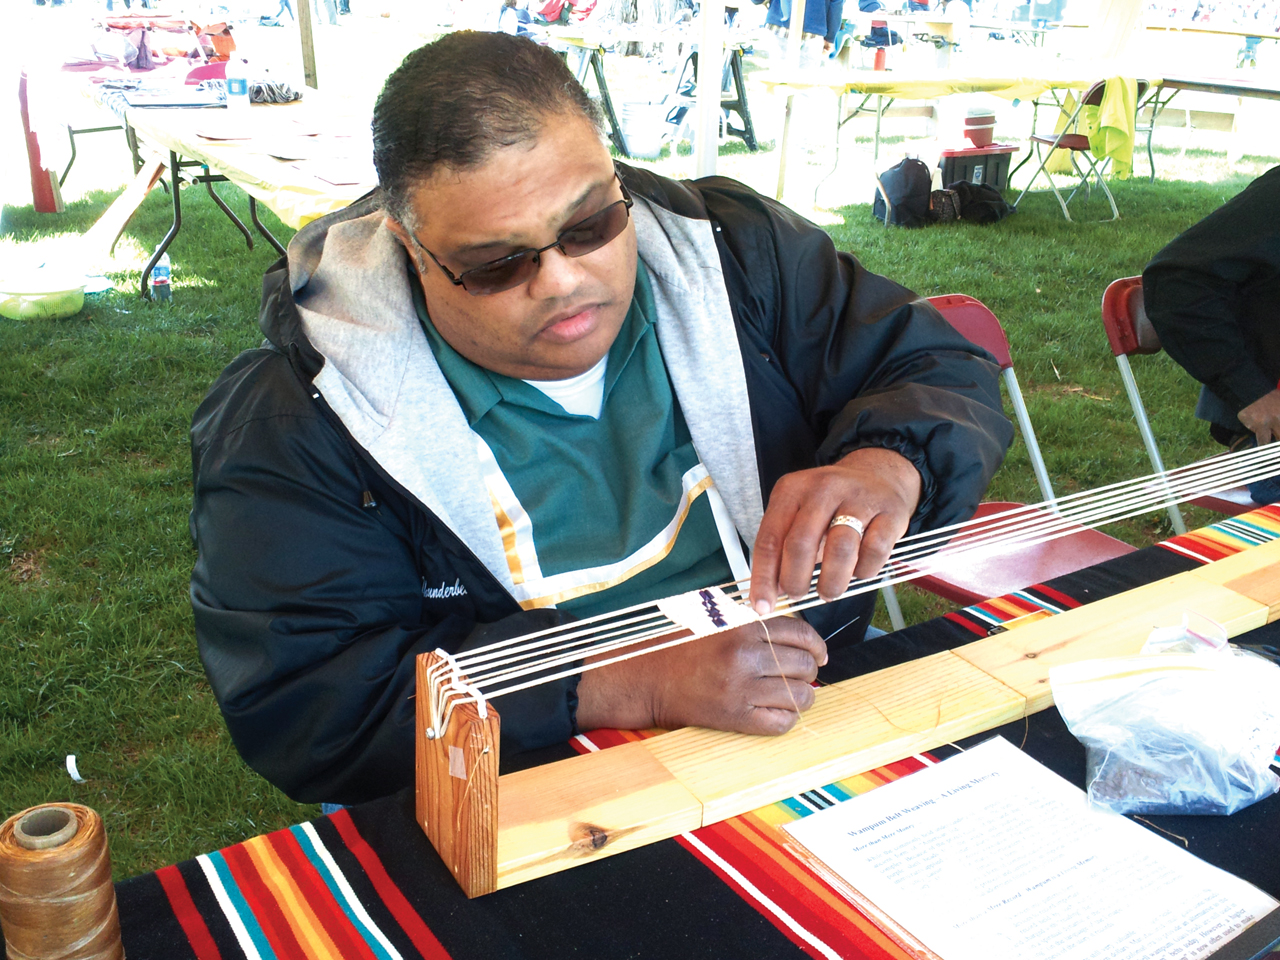 Rev. Dr. J.R. Norwood, pastor of the Ujima Village Christian Church of Ewing and a member of the Nanticoke Lenni-Lenape Tribal Nation, weaves wampum. (Photo from article)